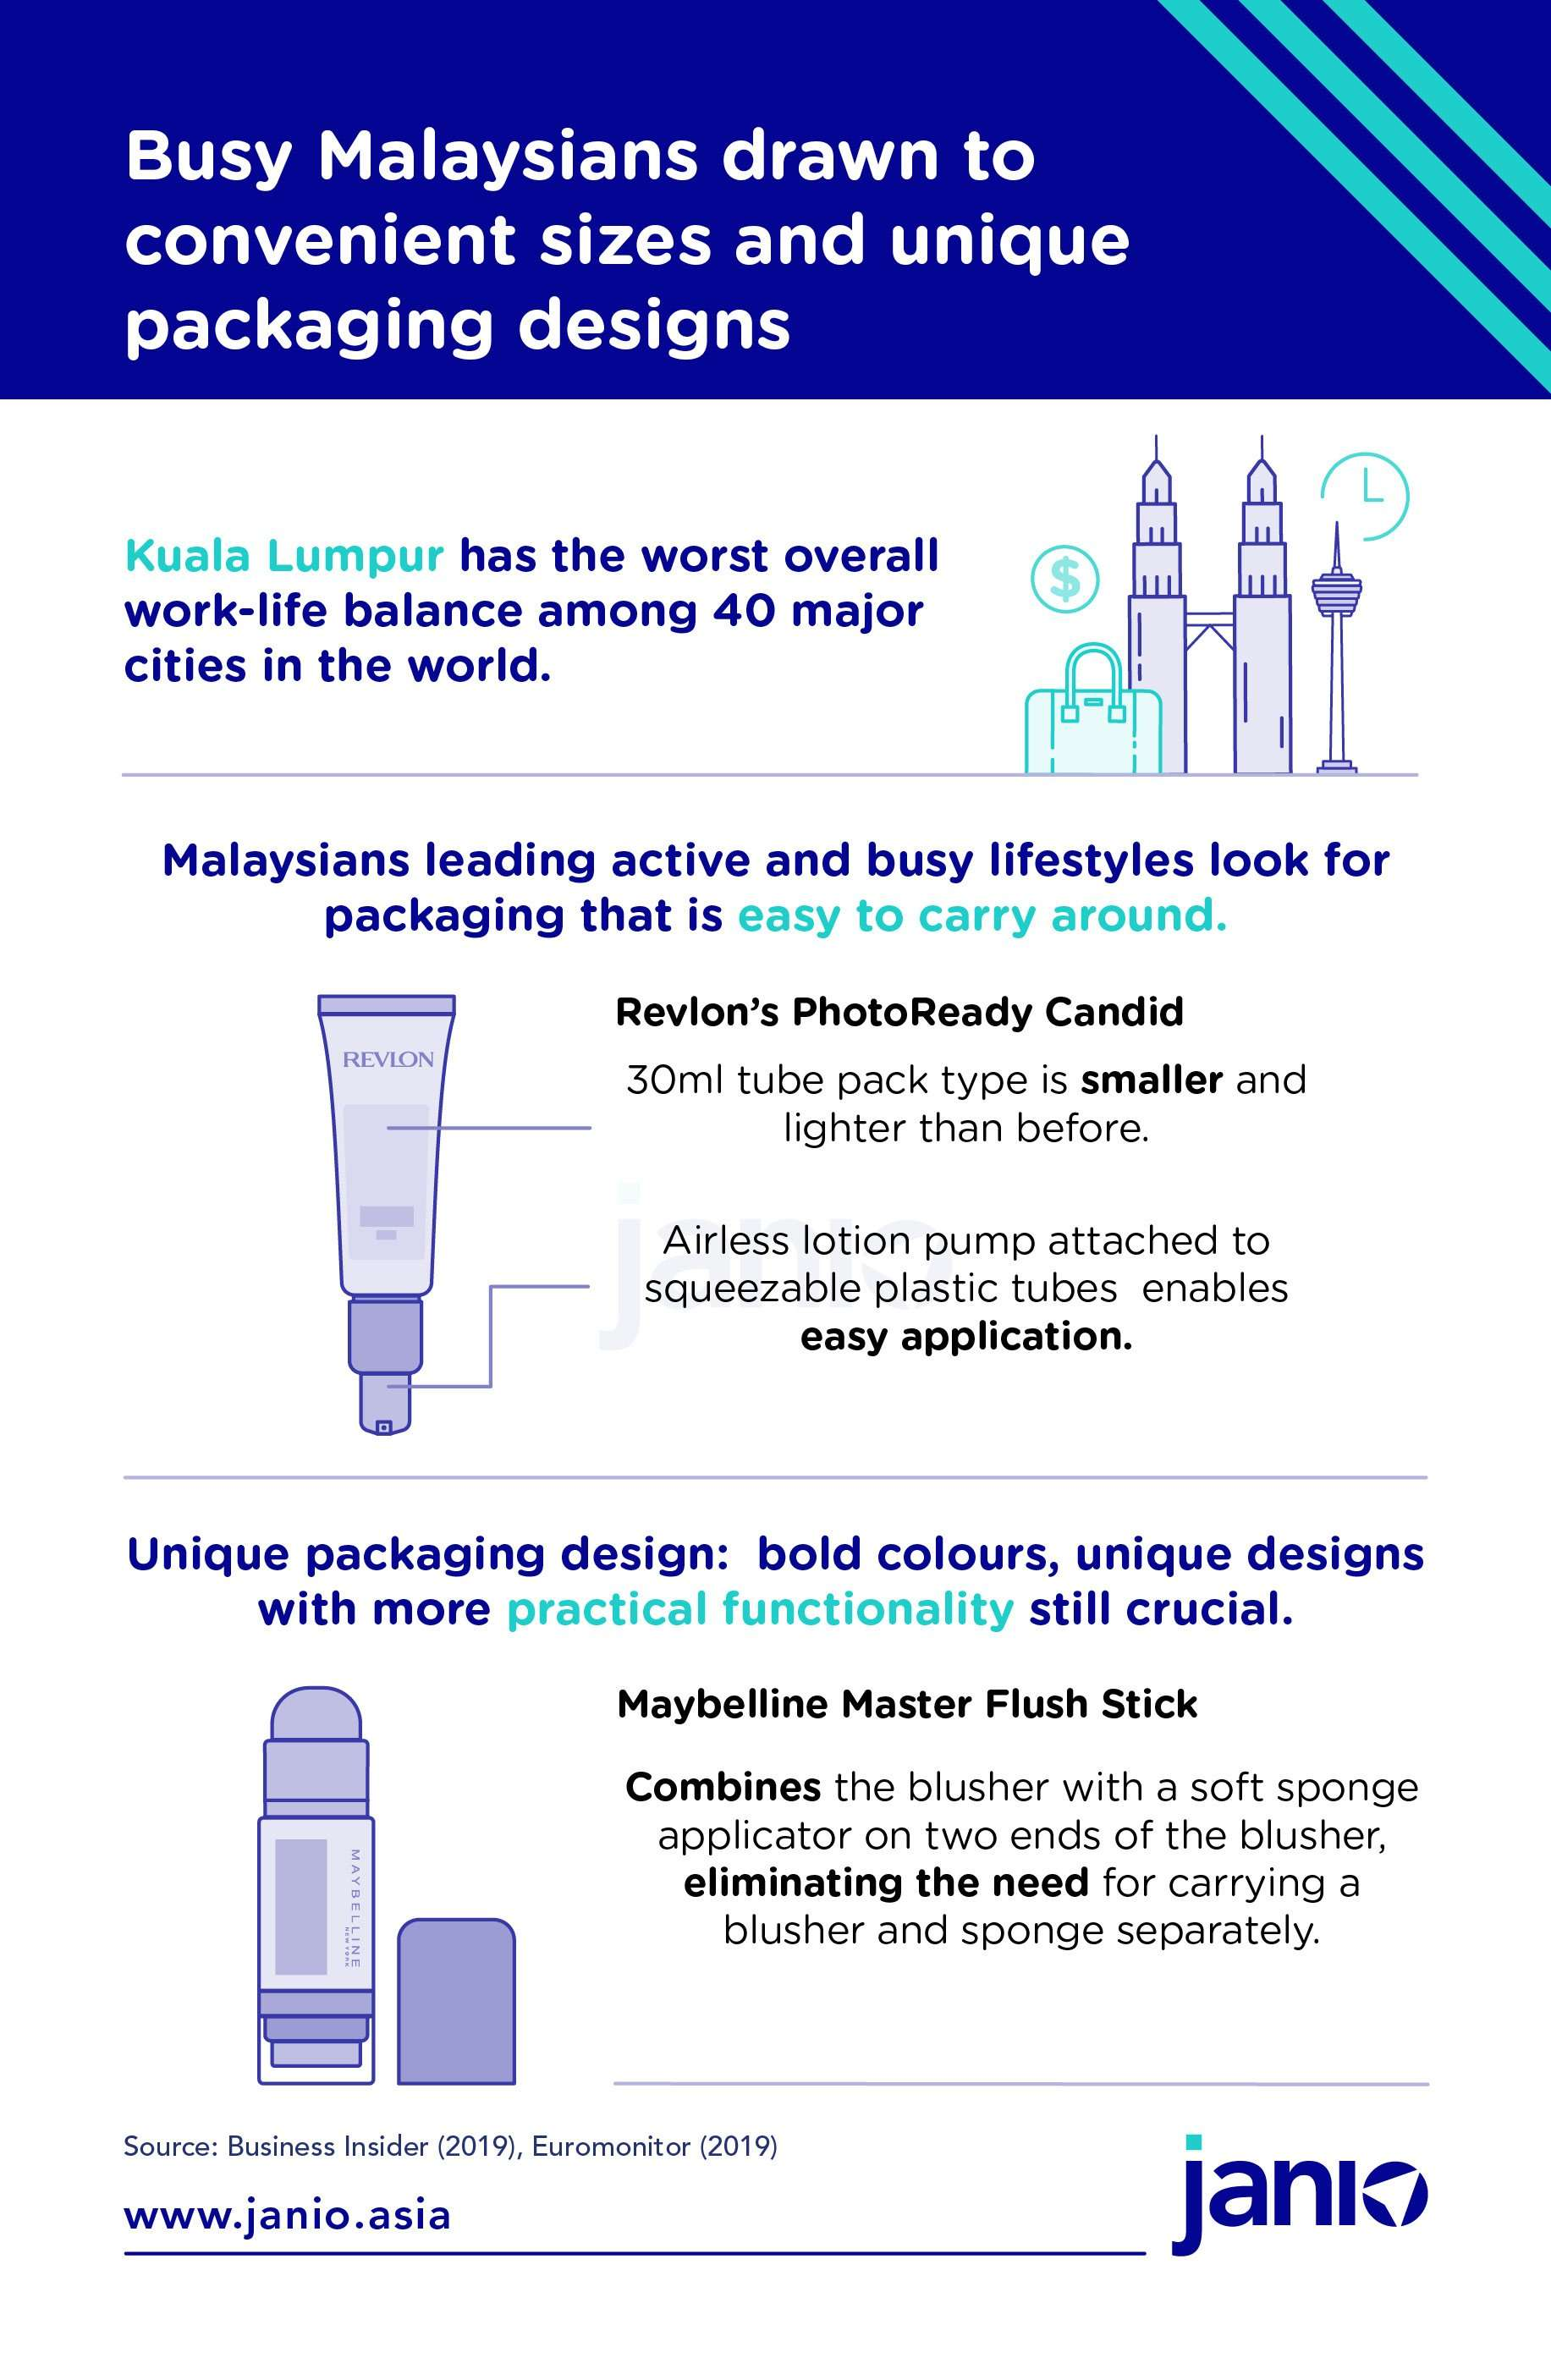 Malaysian Cosmetics eCommerce Trends Infographic - Busy Malaysians look for convenience and unique packaging